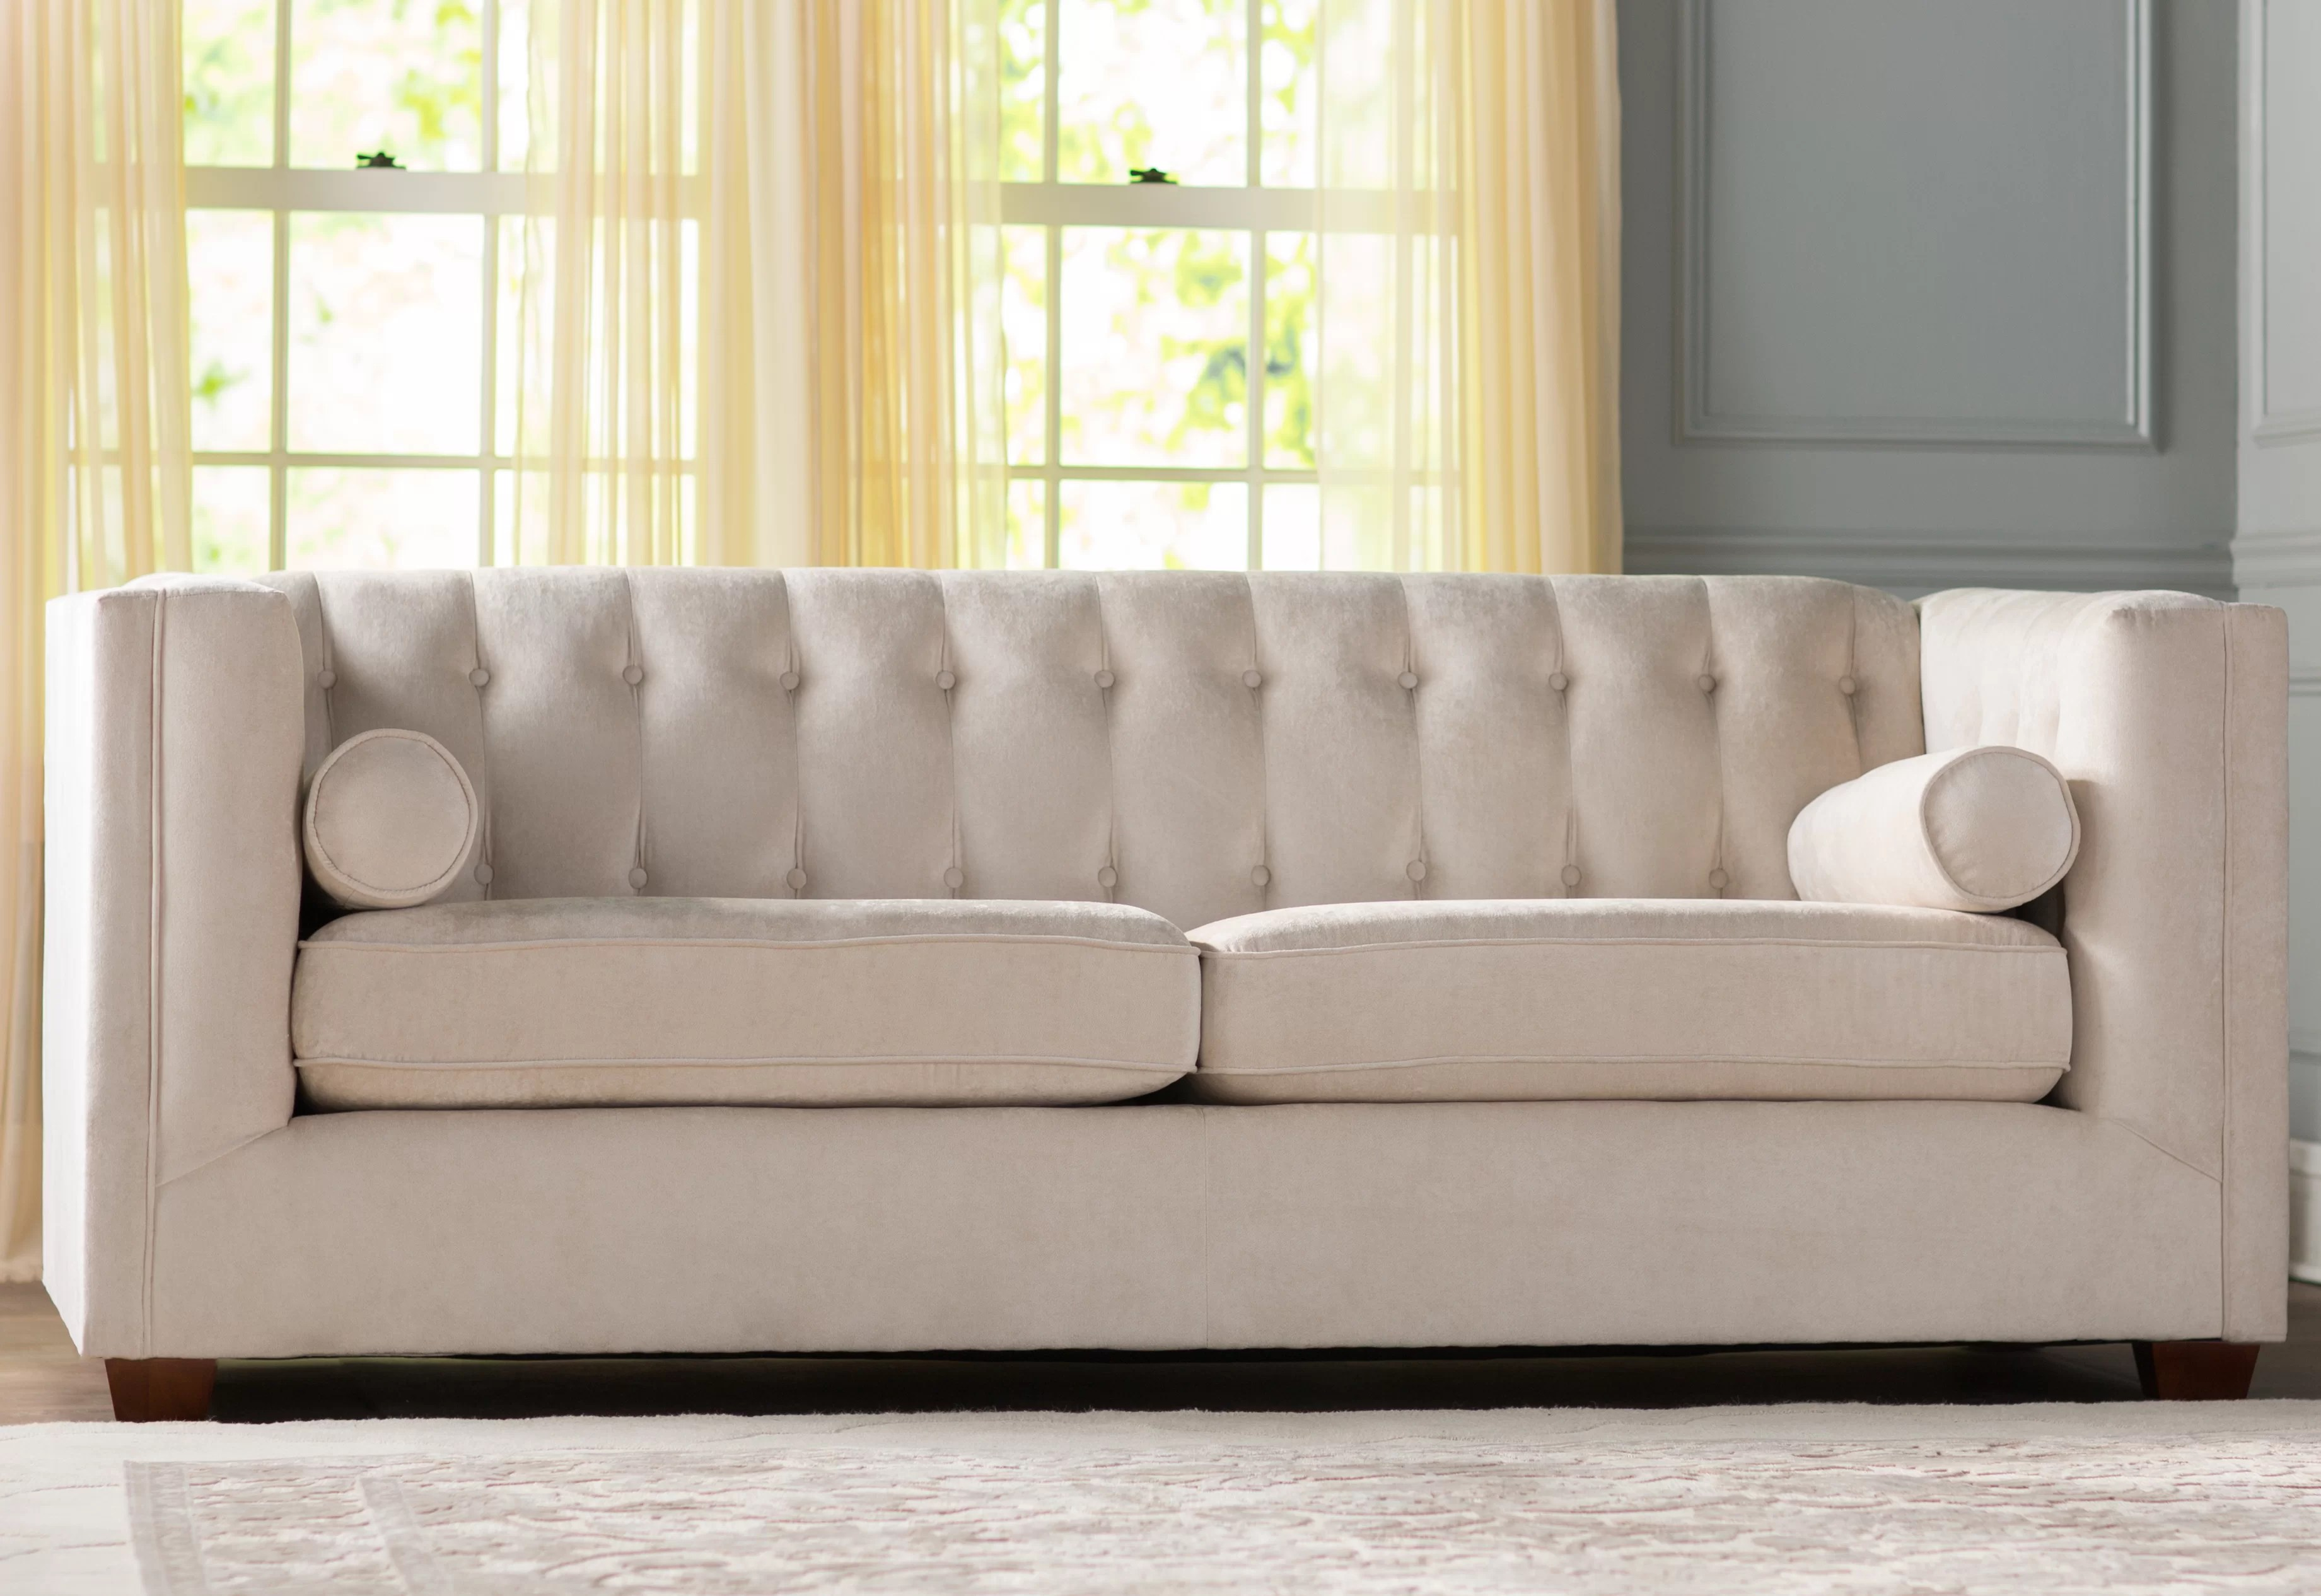 Sofa Foam Cleaner Cleaning 101 How To Clean A Sofa Wayfair